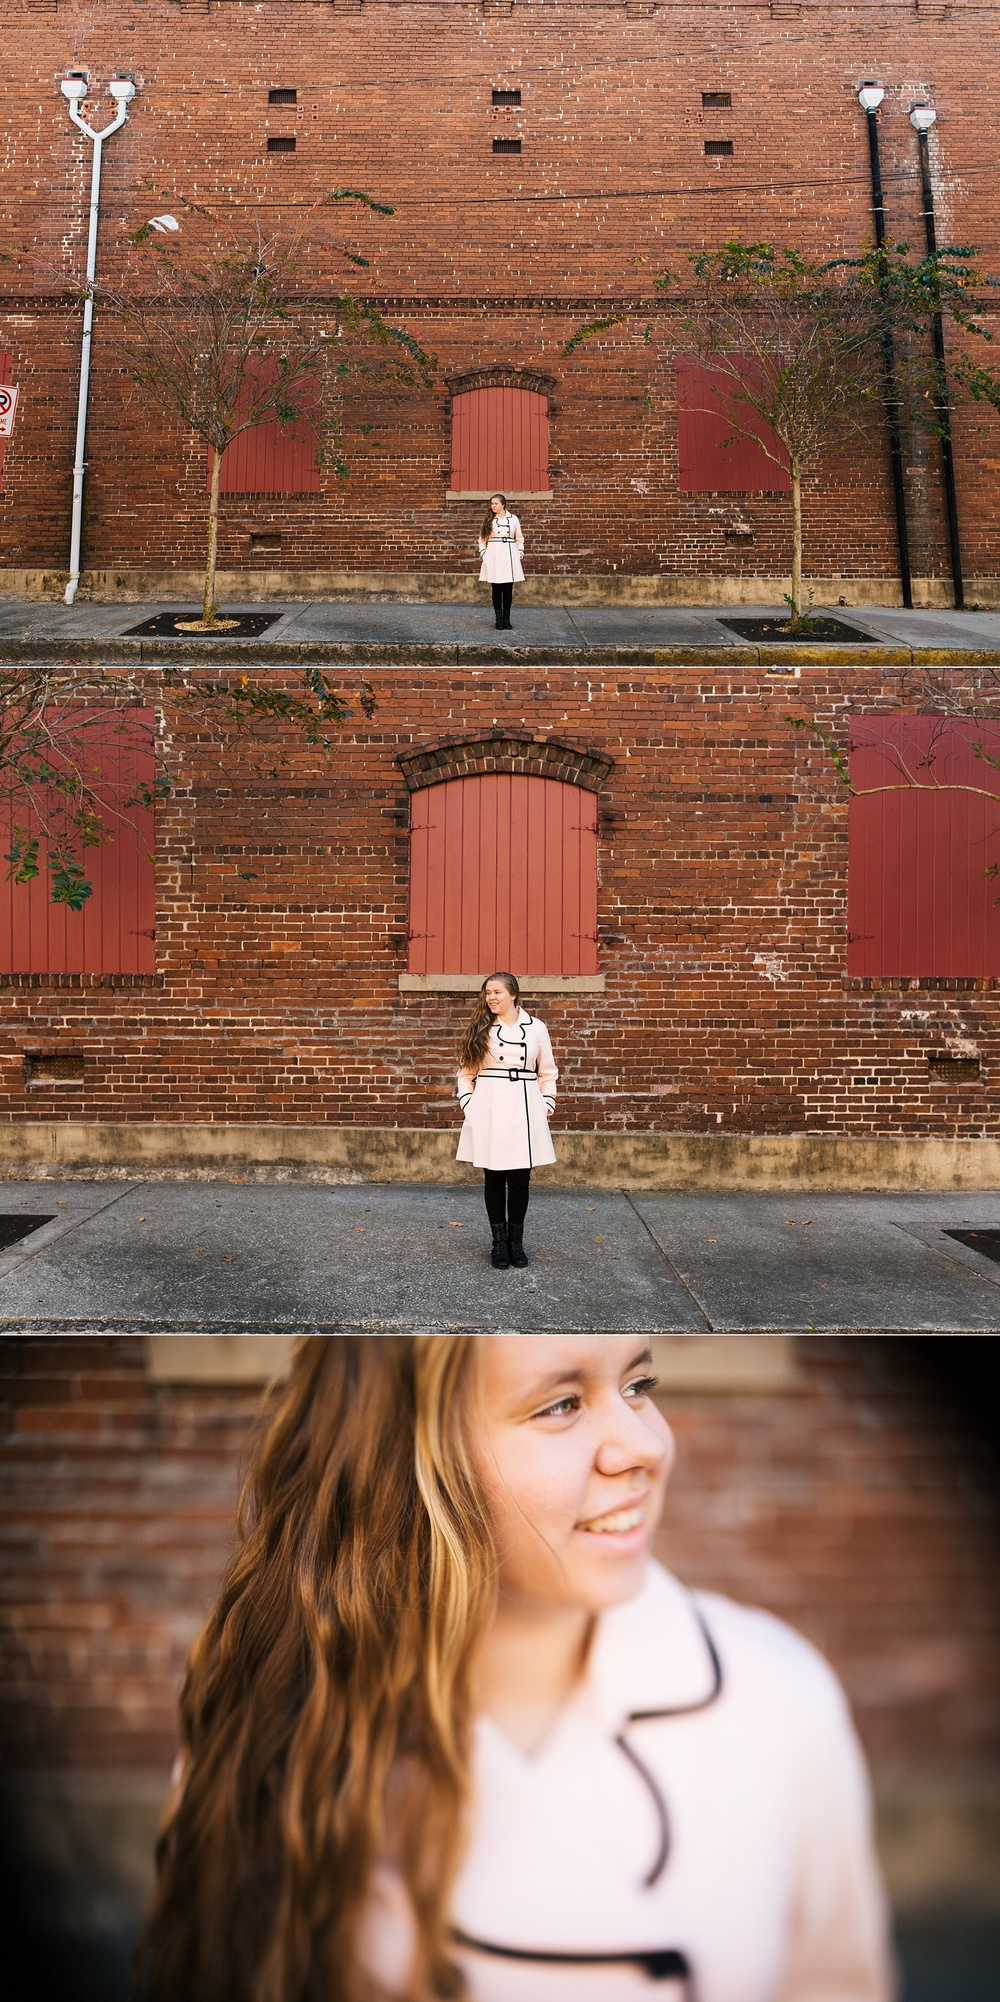 ybor city tampa senior portraits morgan-1